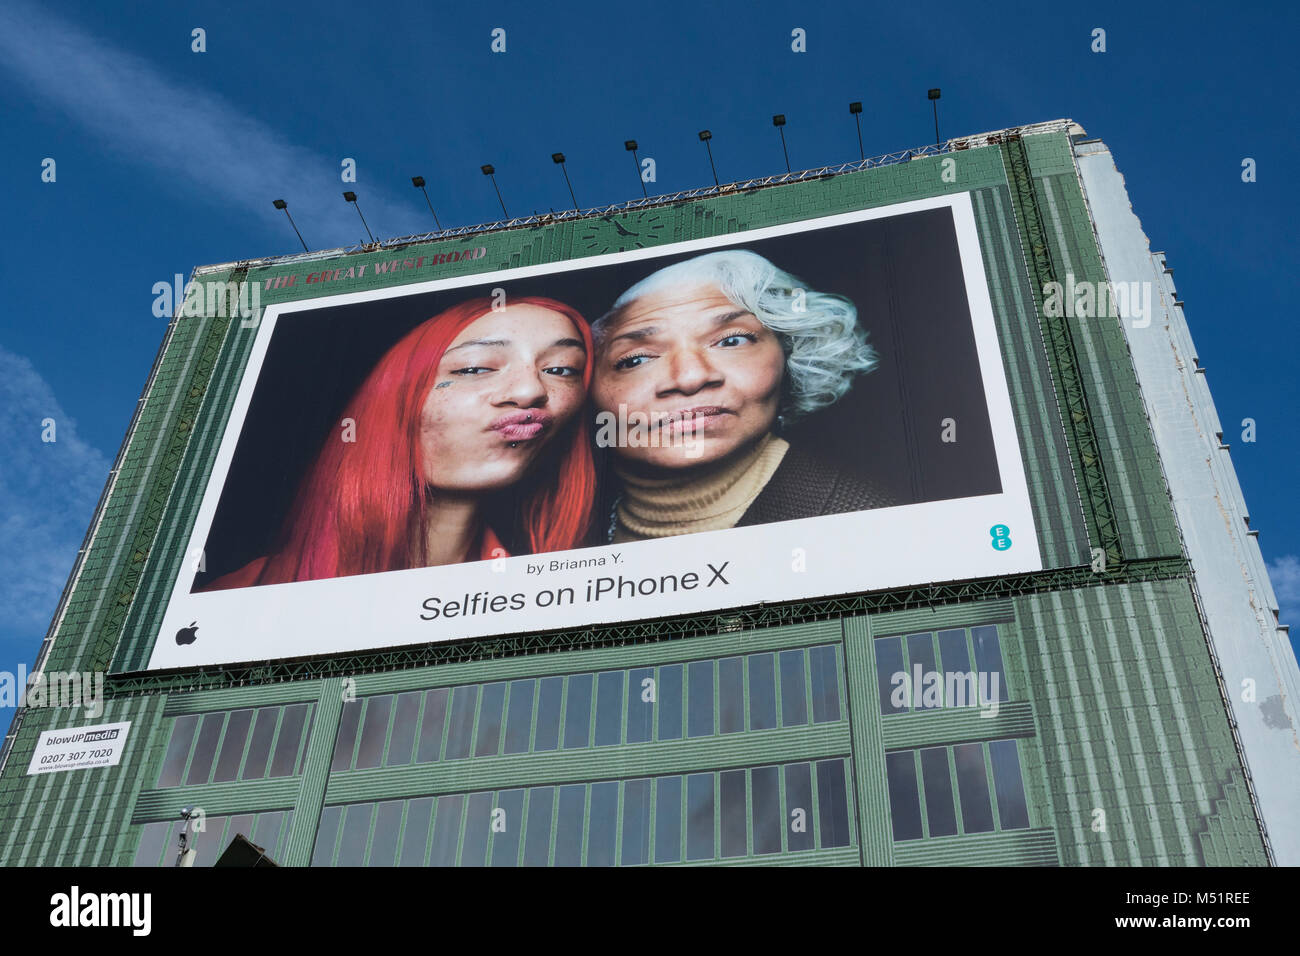 iPhone X selfies by Brianna Y - digital billboard in Brentford, West London, U.K. Stock Photo